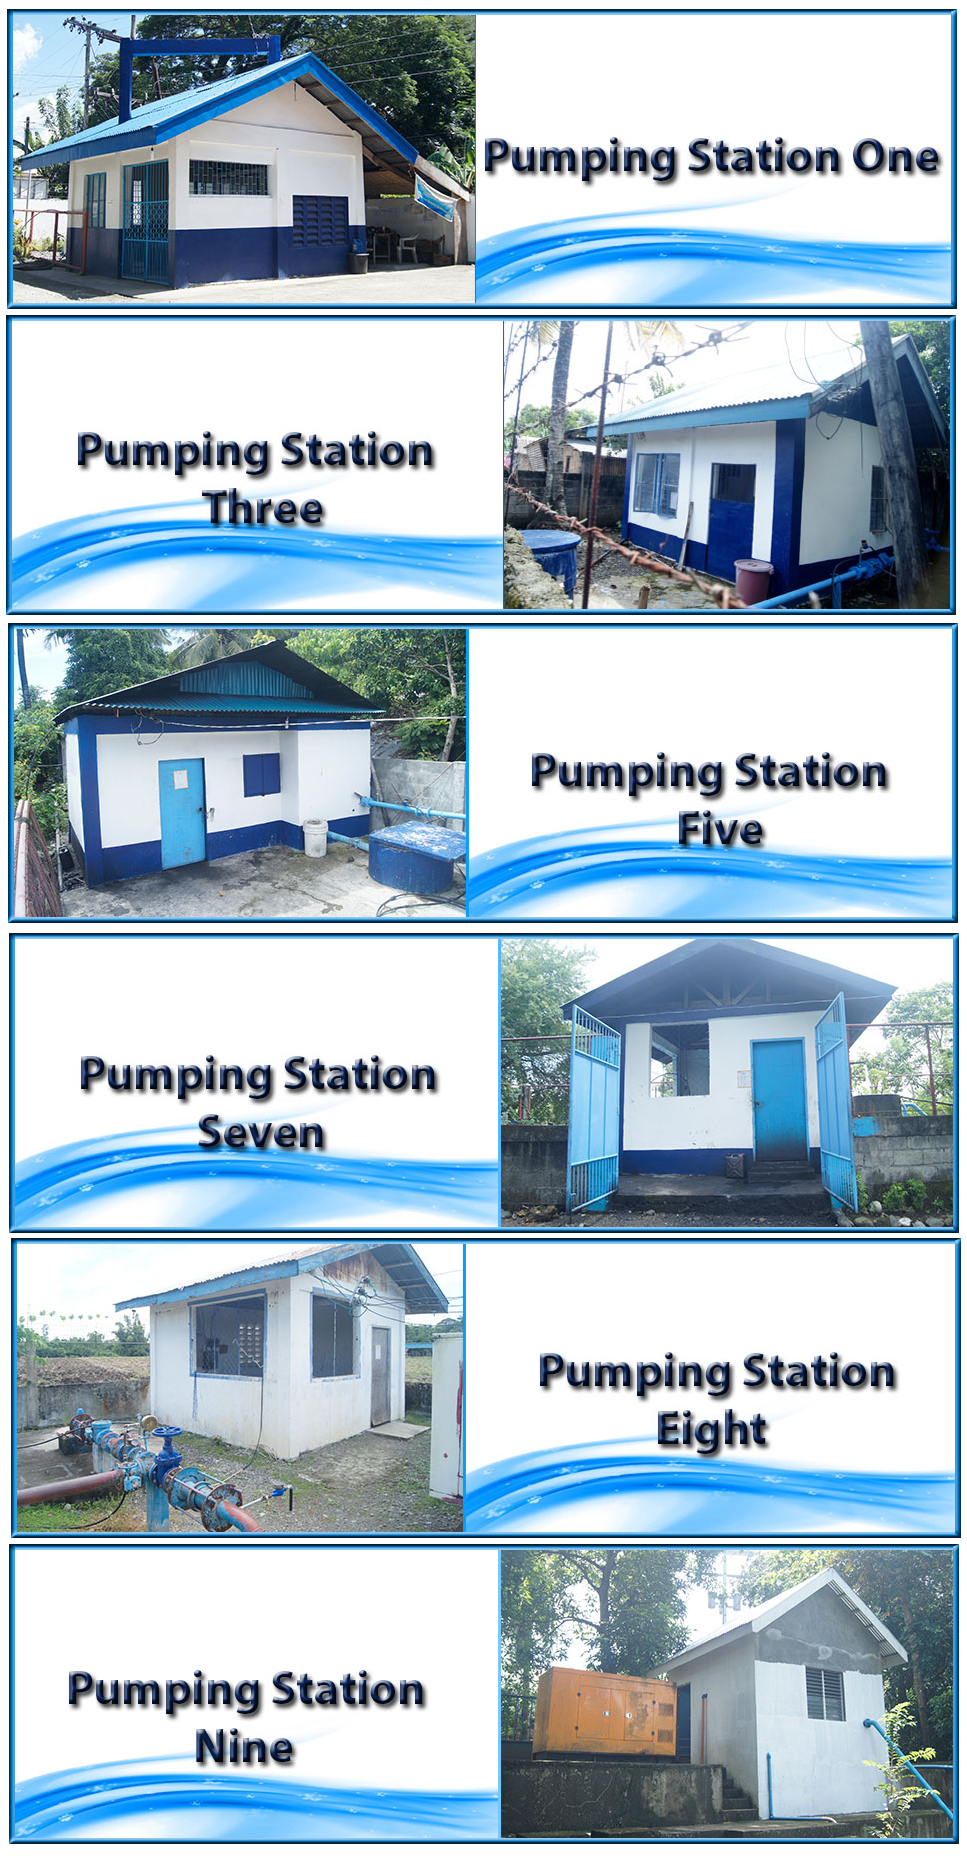 pumping station images